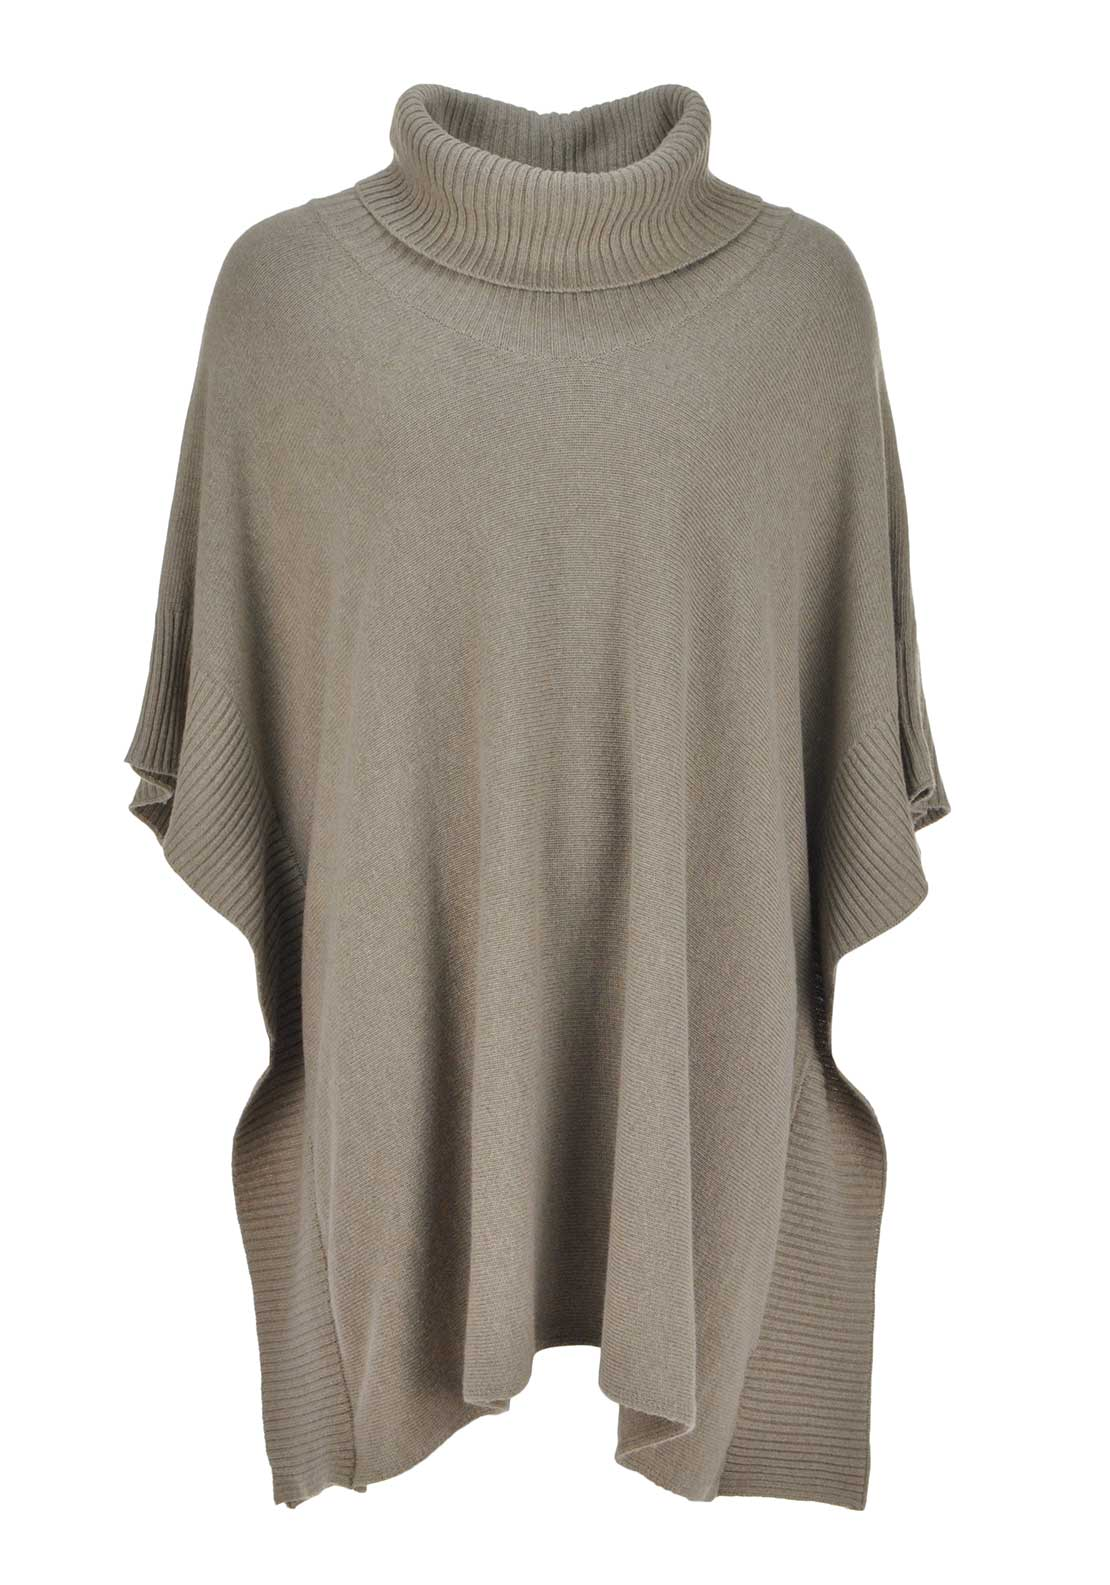 Apanage Relaxed Fit Fine Knit Poncho Cardigan, Beige